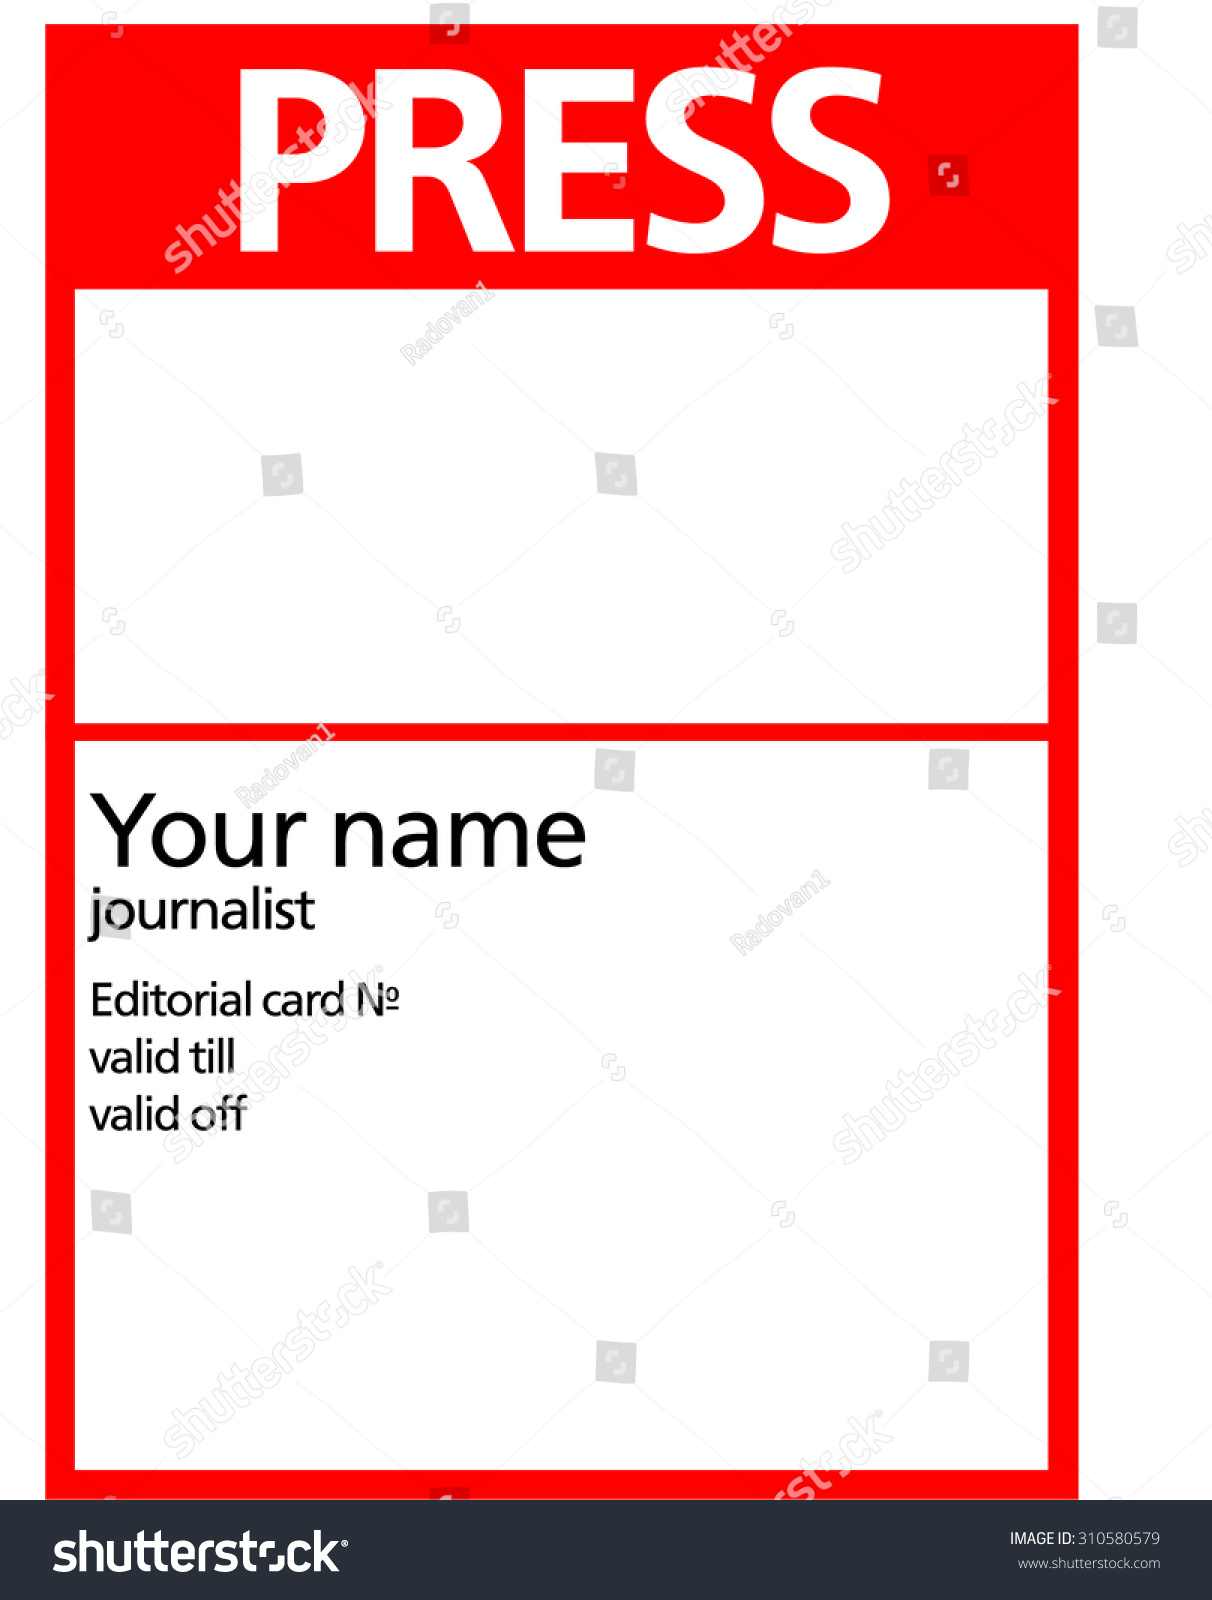 press pass request template - press pass template images galleries